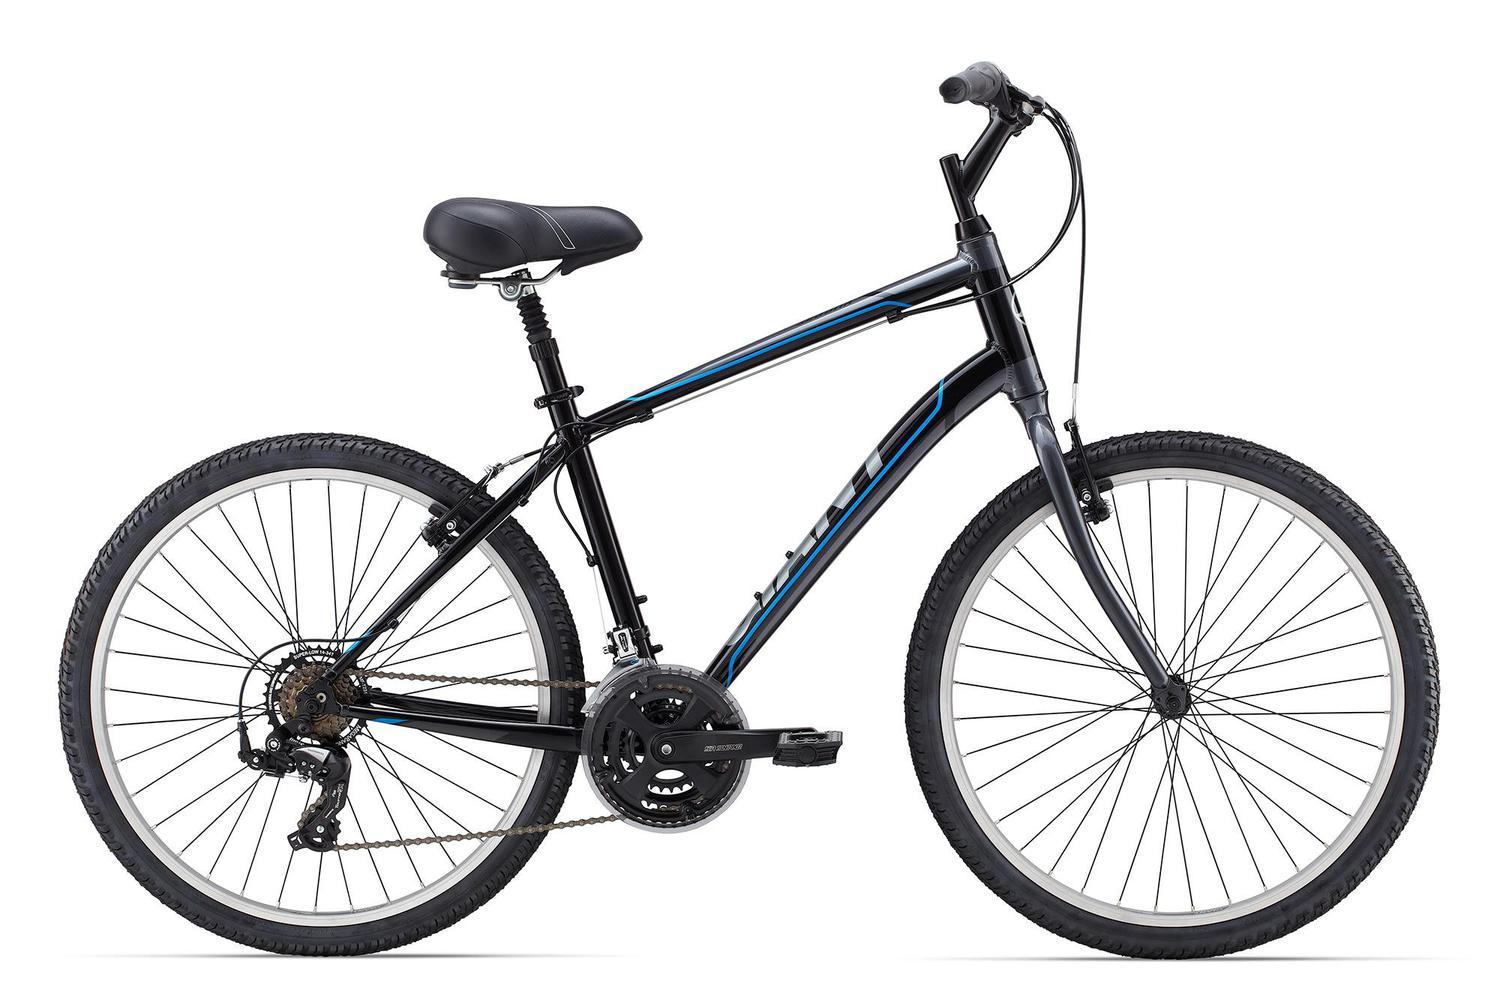 GIANT Sedona Men's Bicycle